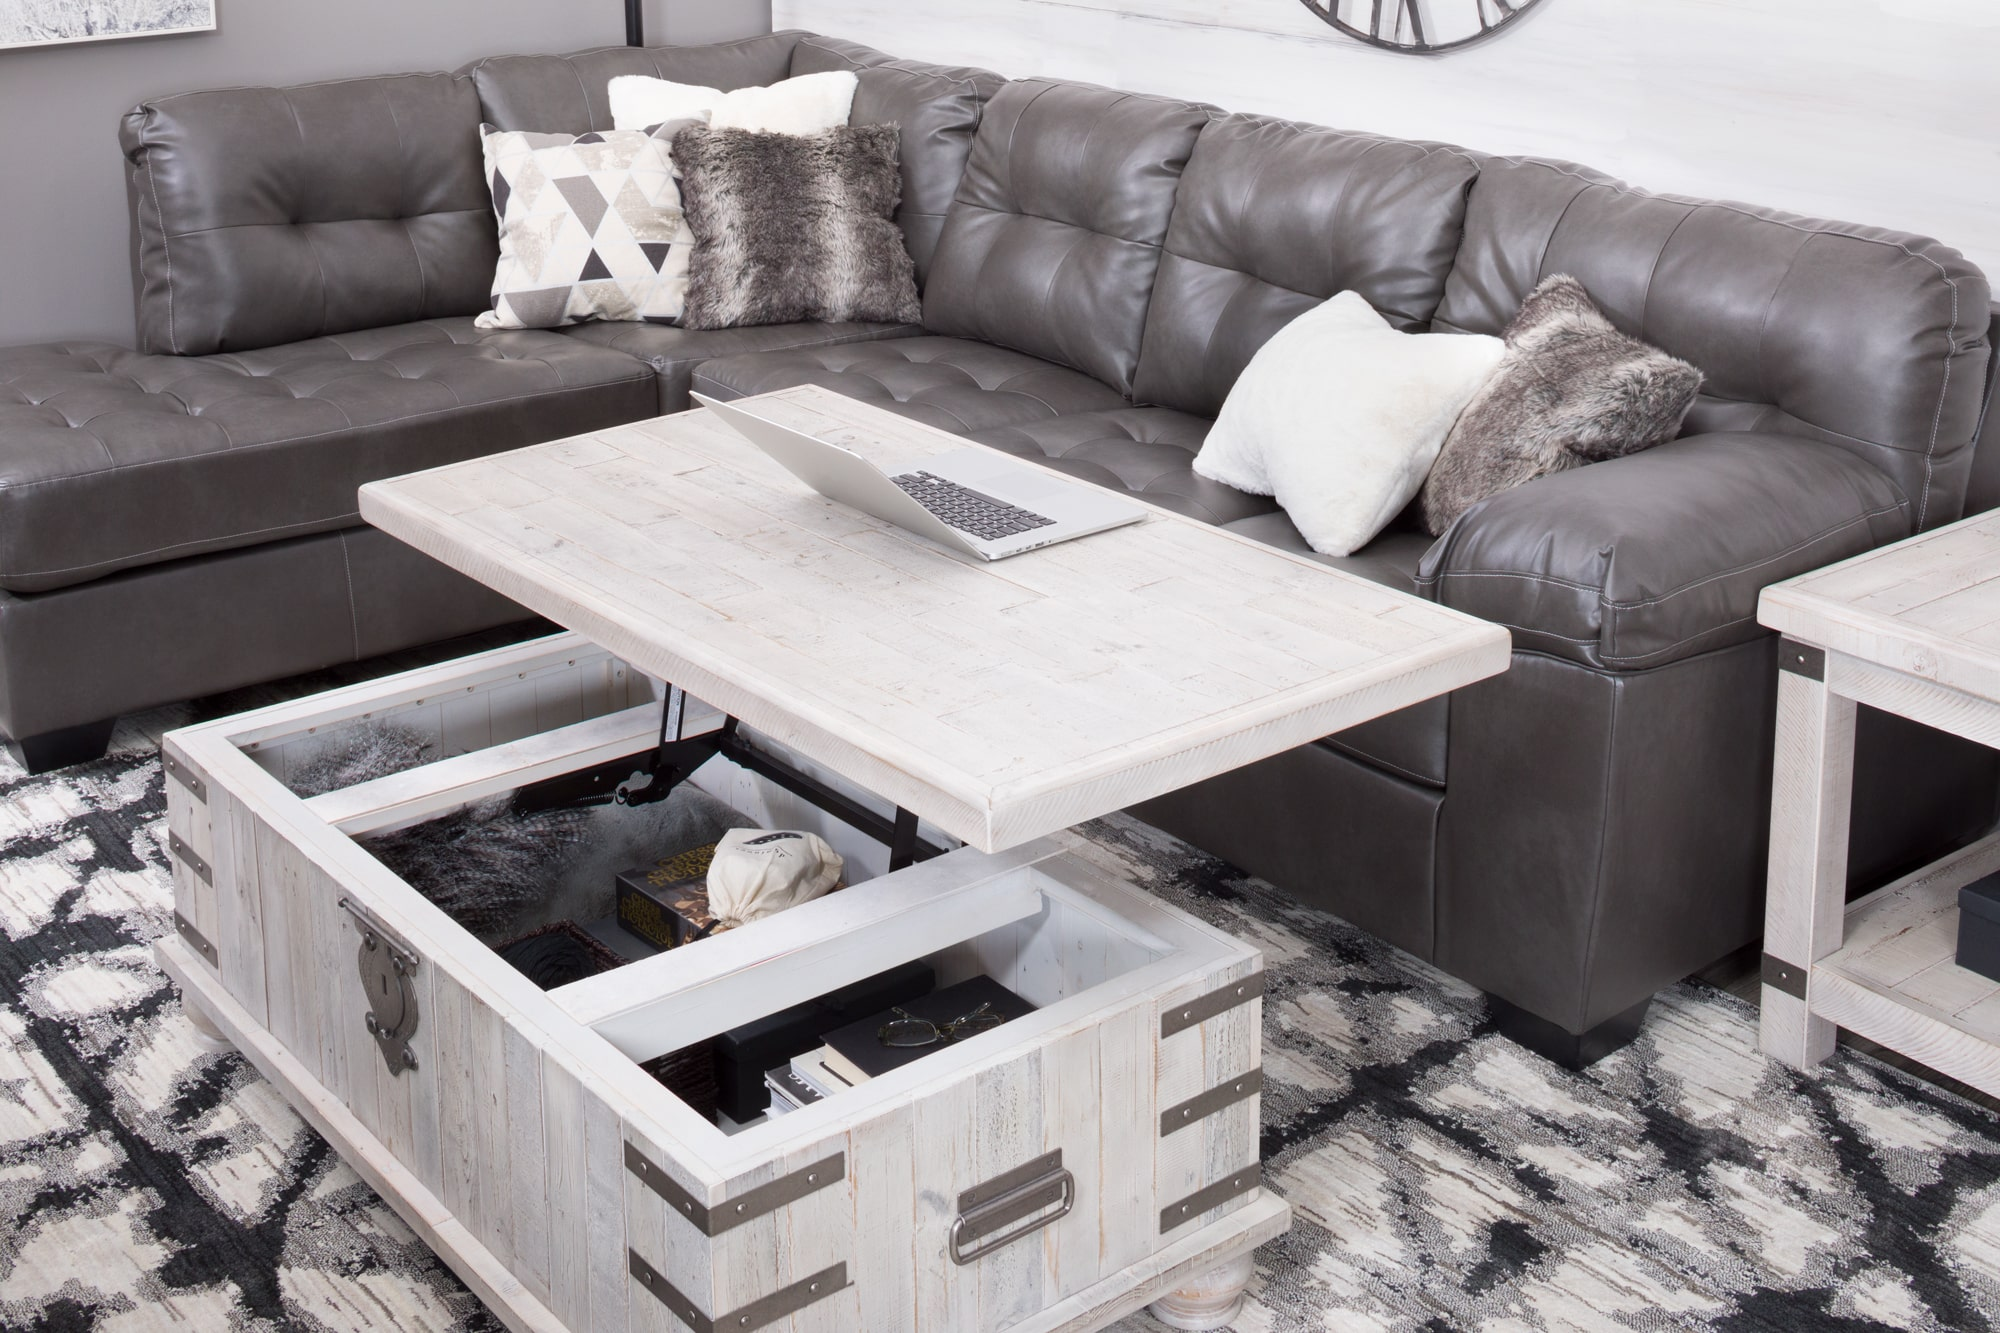 Lift top cocktail table showing storage underneath